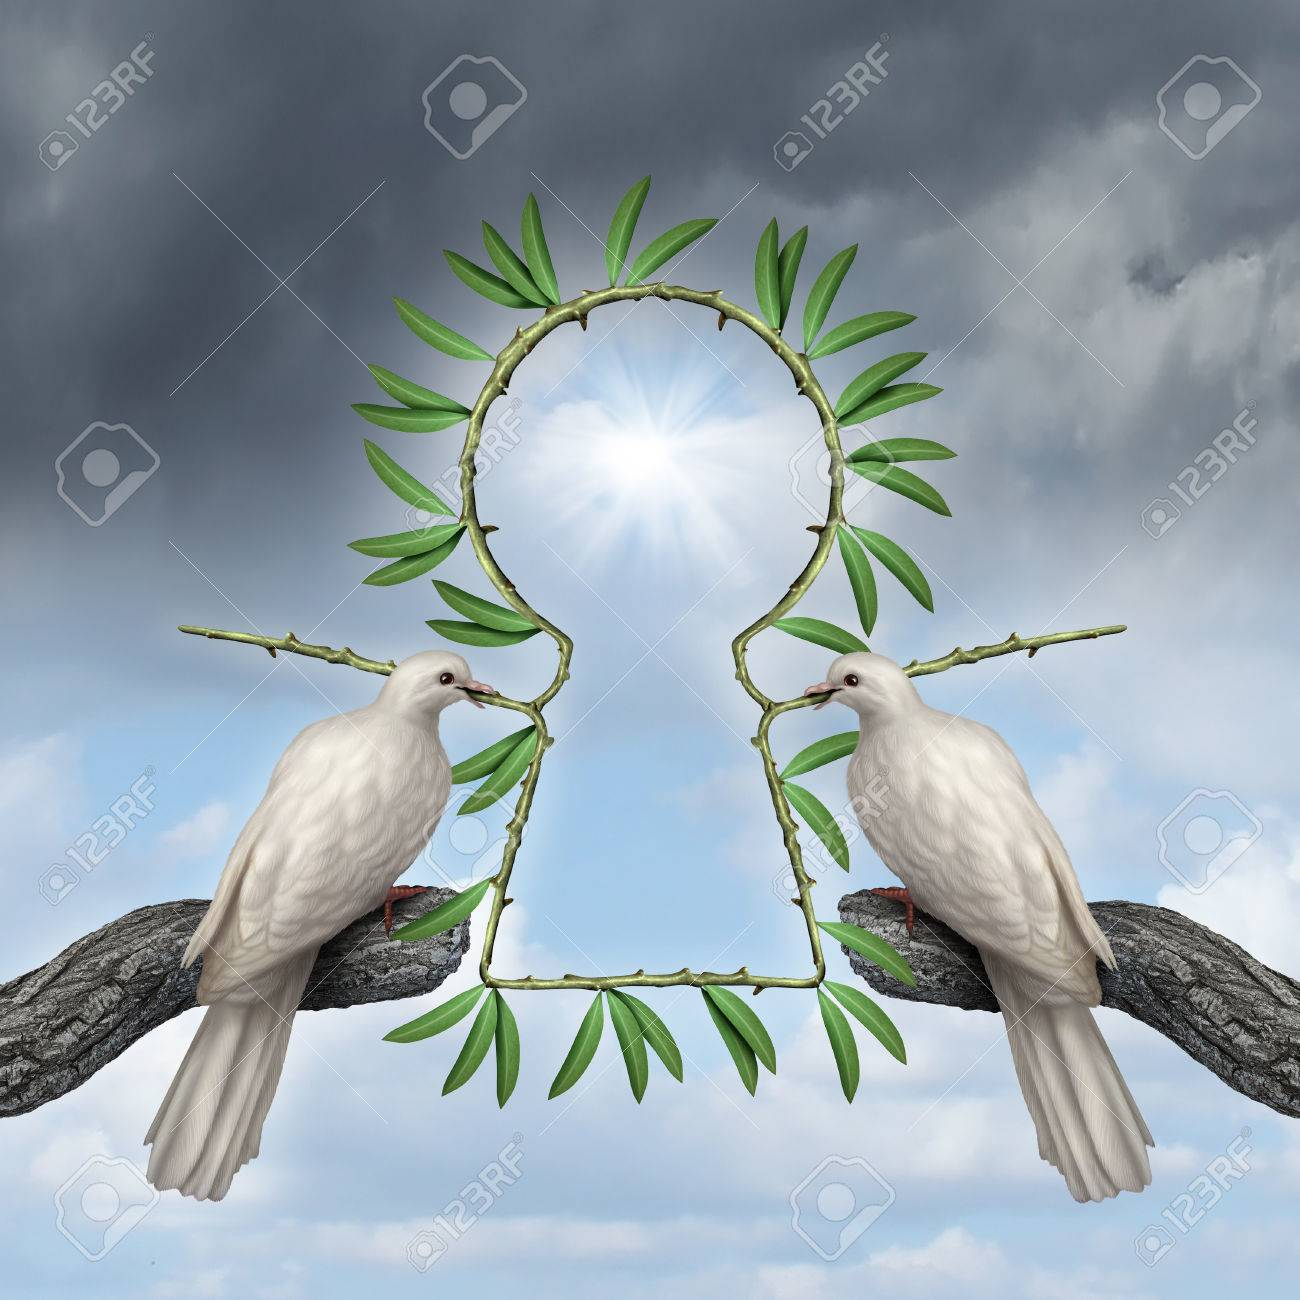 Key To Peace Symbol As Two White Doves Coming Together With A